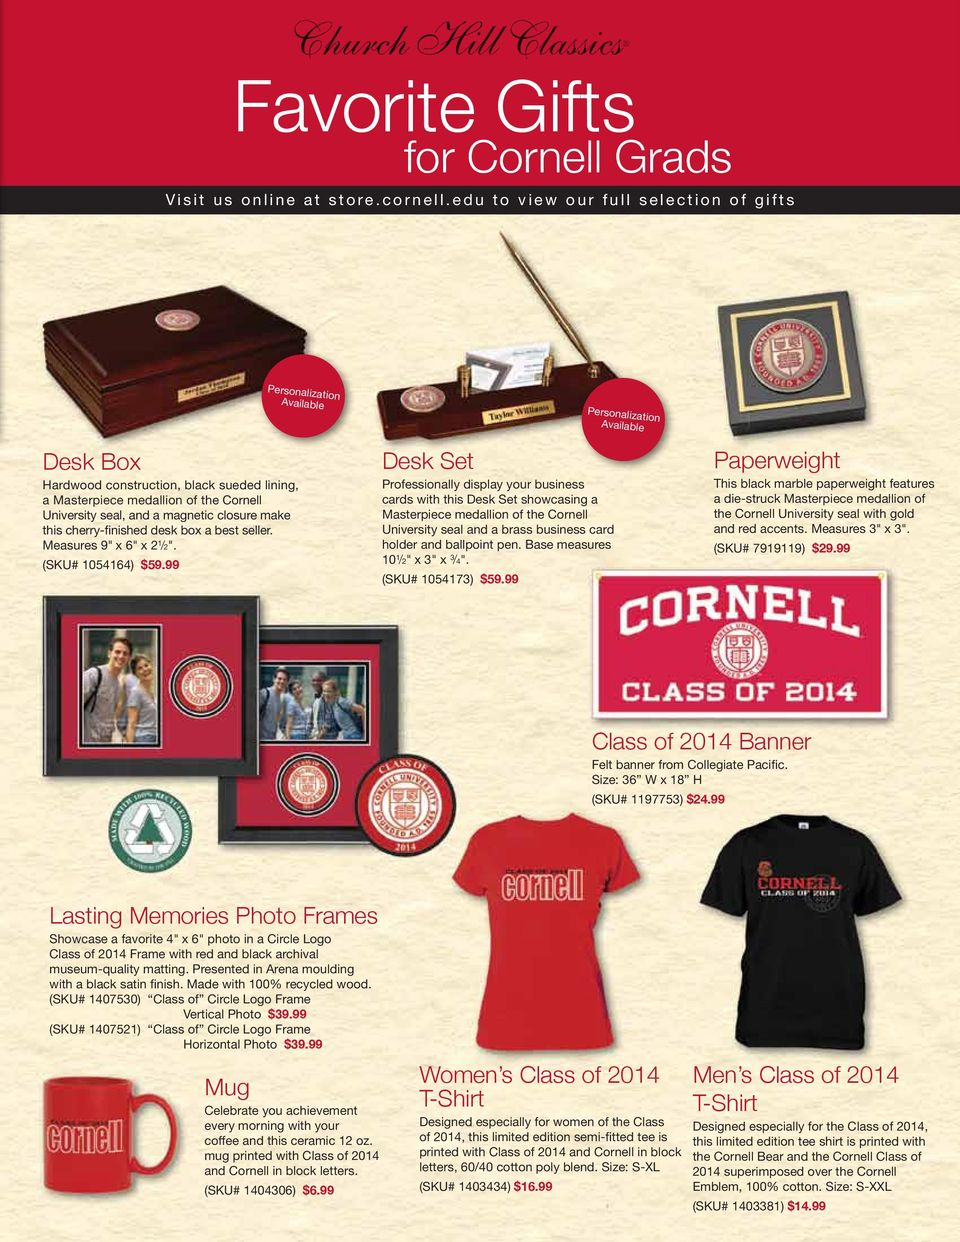 "Cornell University seal, and a magnetic closure make this cherry-finished desk box a best seller. Measures 9"" x 6"" x 2 1 /2"". (SKU# 1054164) $59."